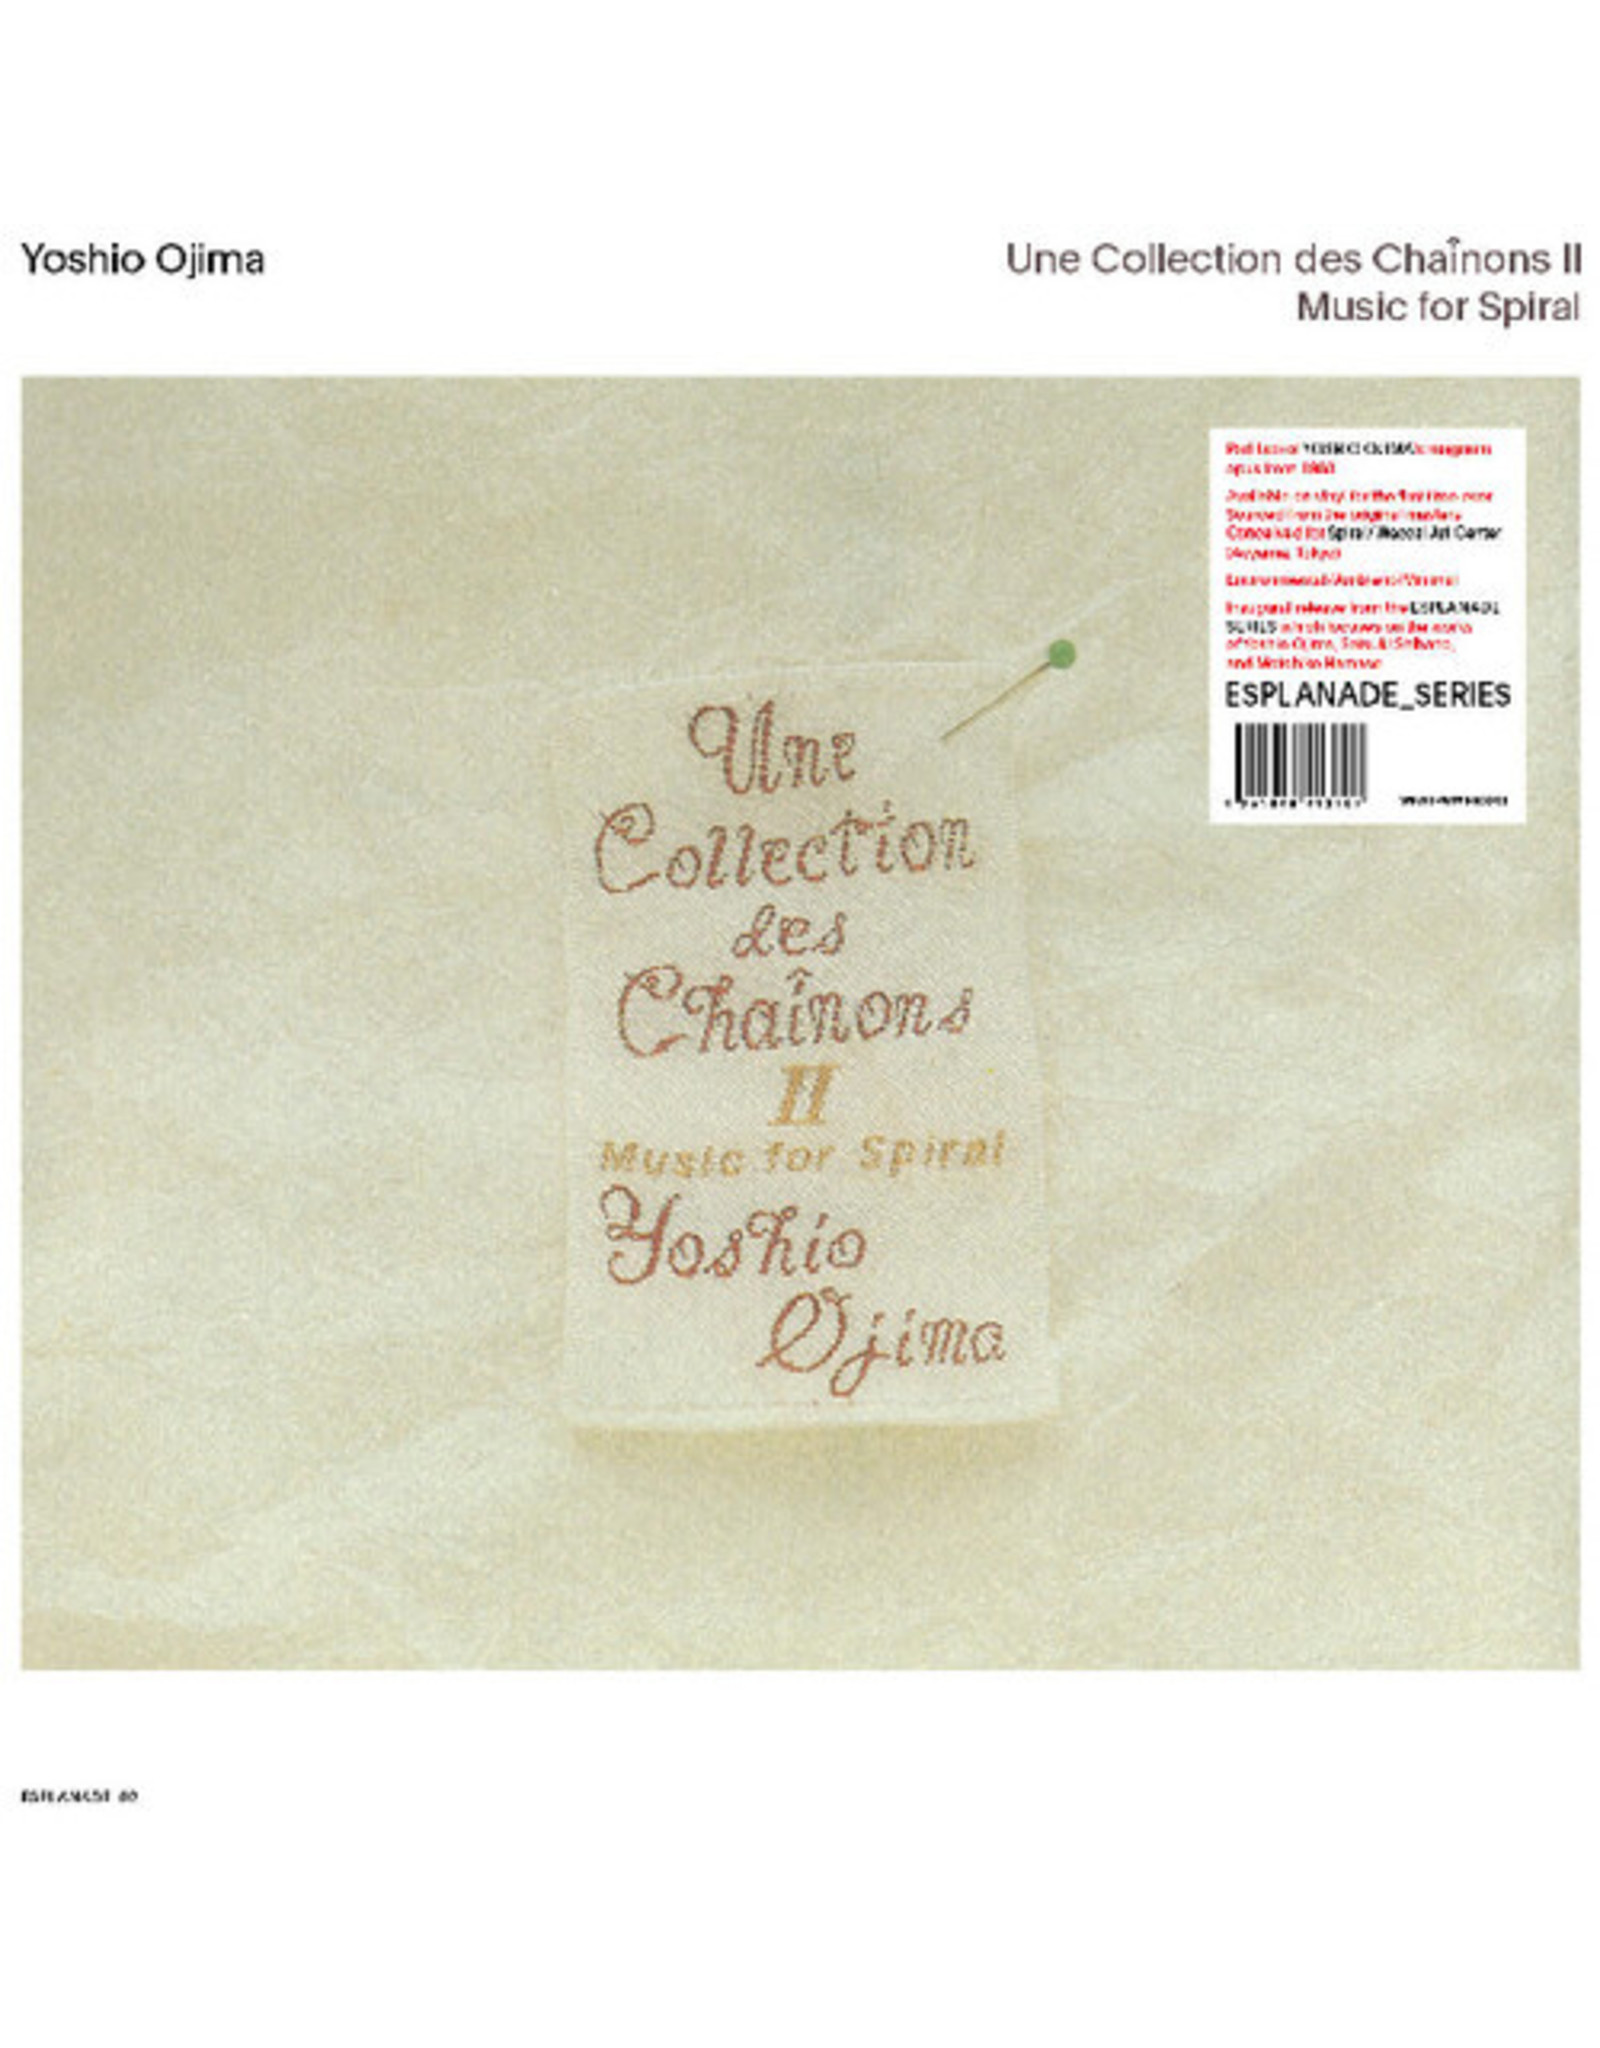 New Vinyl Yoshio Ojima - Une Collection des Chainons II: Music For Spiral 2LP